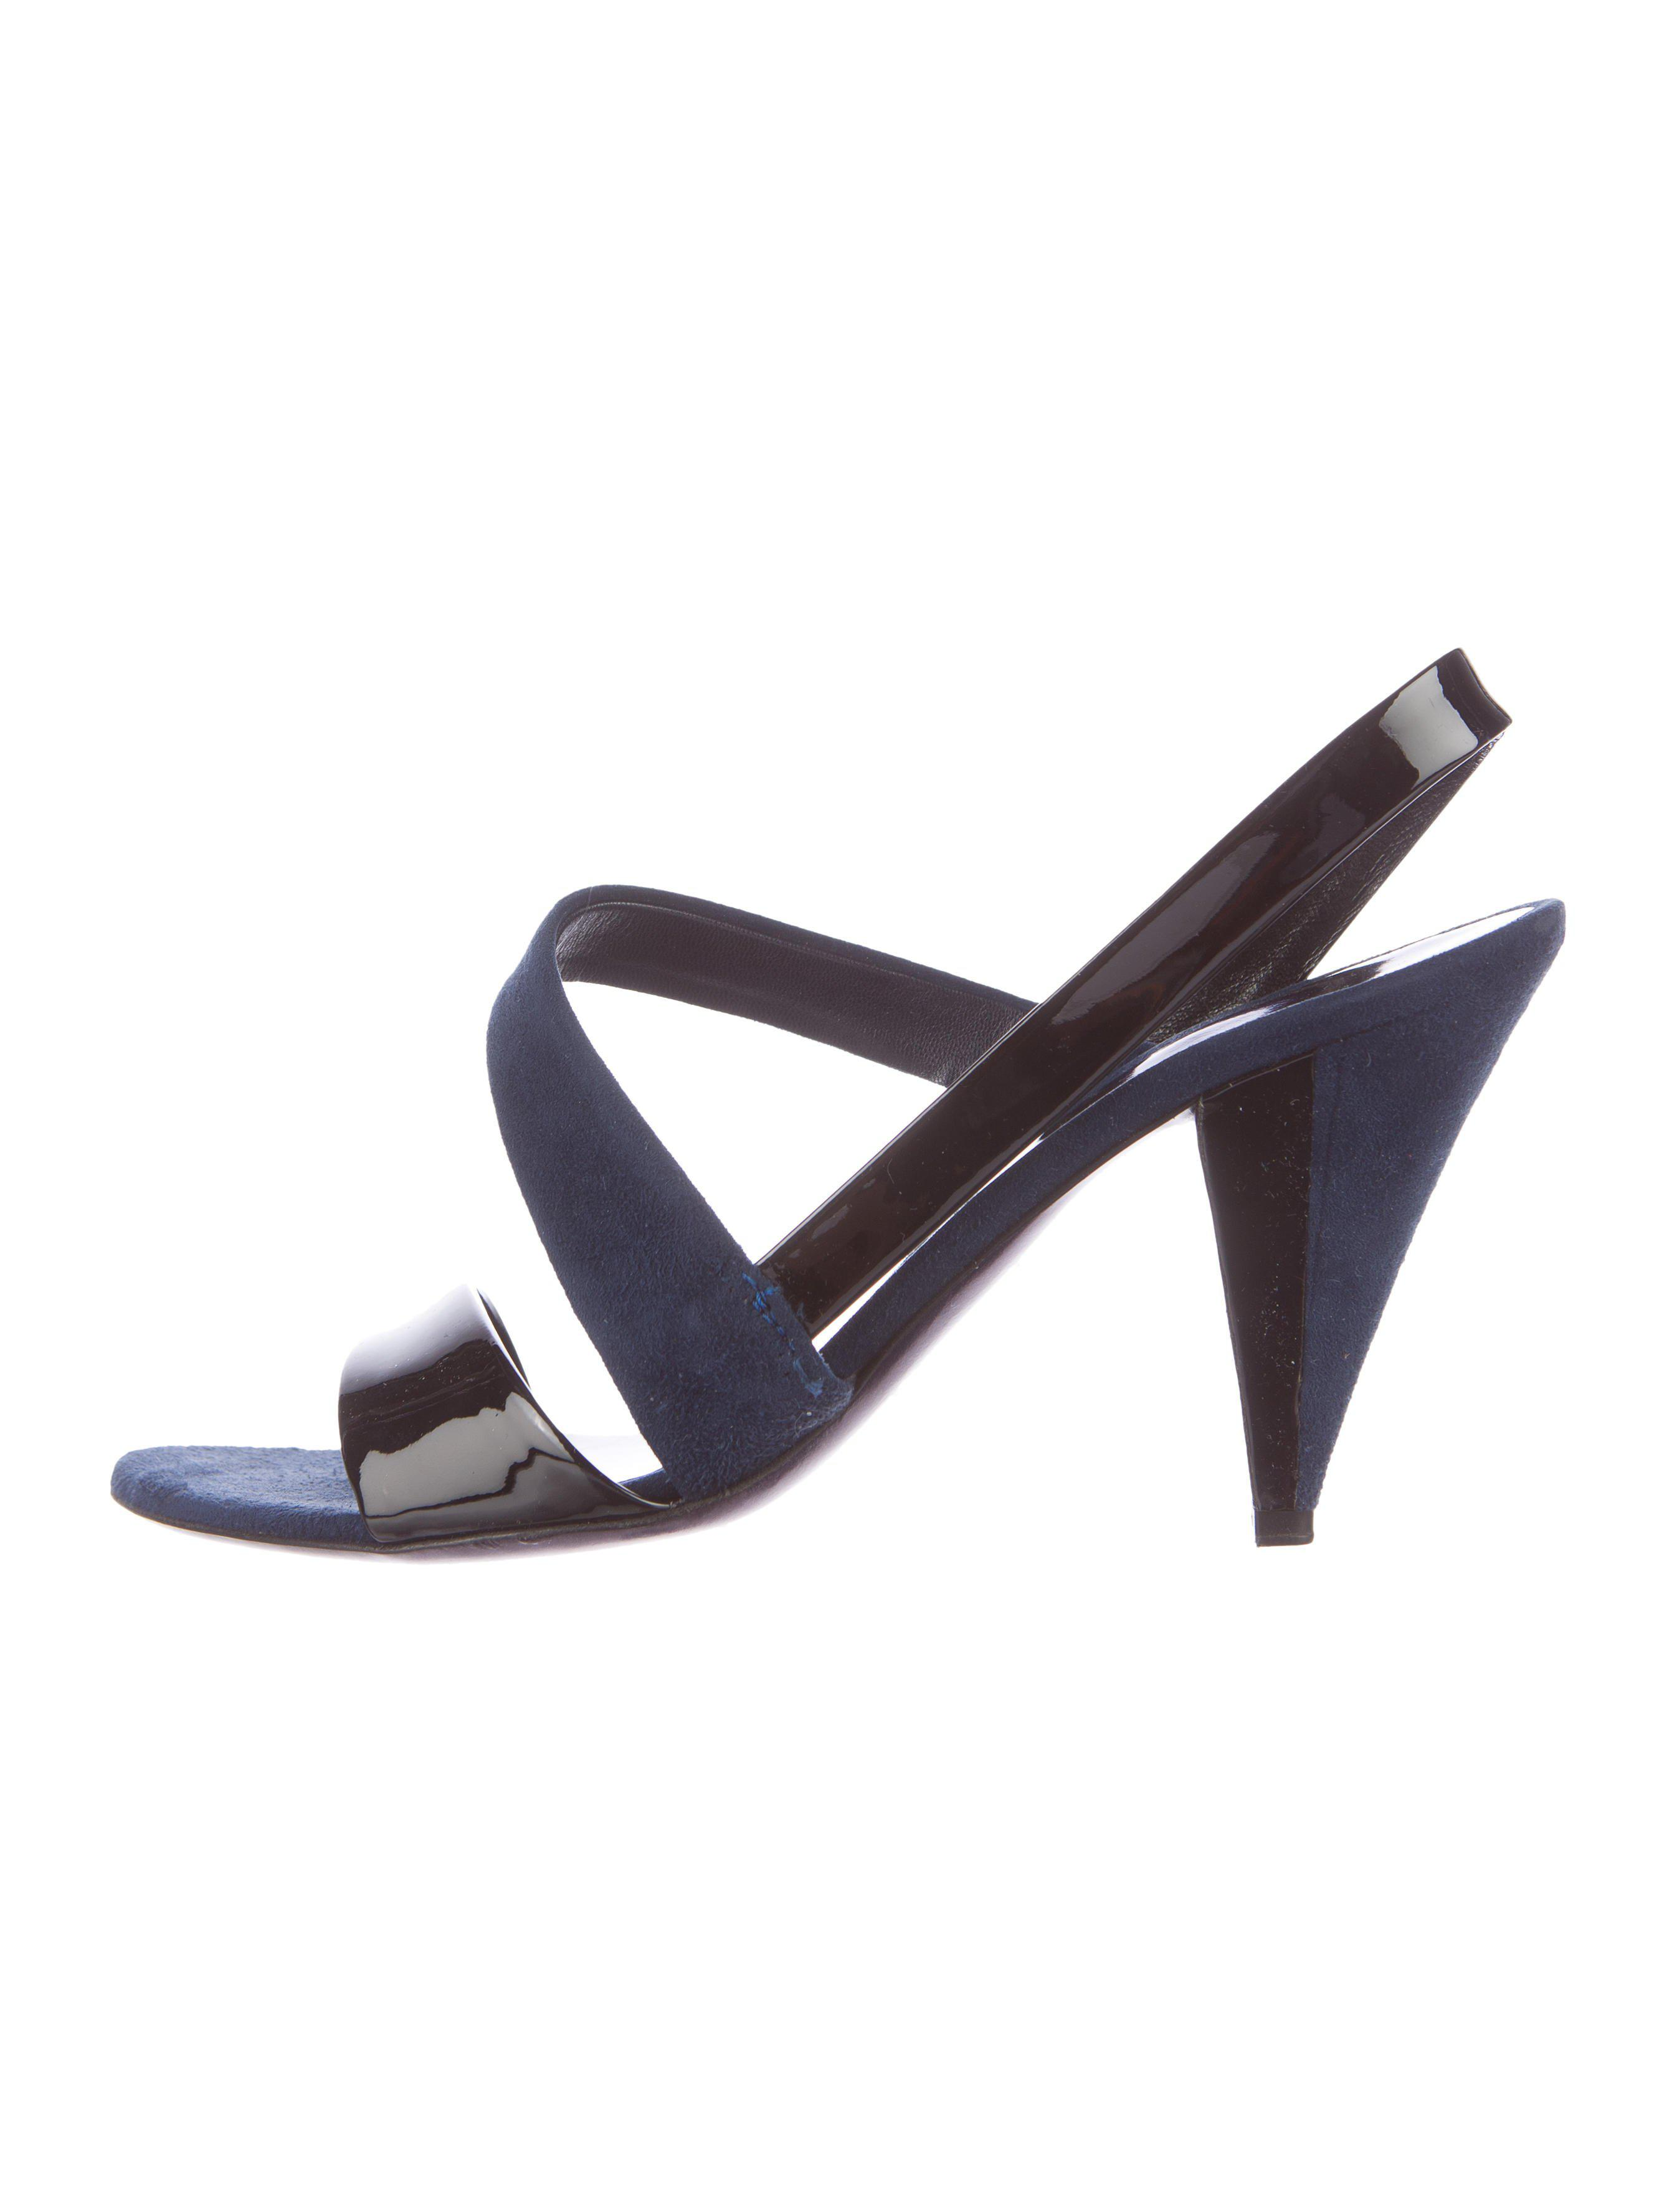 Miu Miu Suede & Patent Leather Sandals footlocker pictures discount low price buy cheap for sale clearance fashionable cheap manchester great sale Kx7DV9